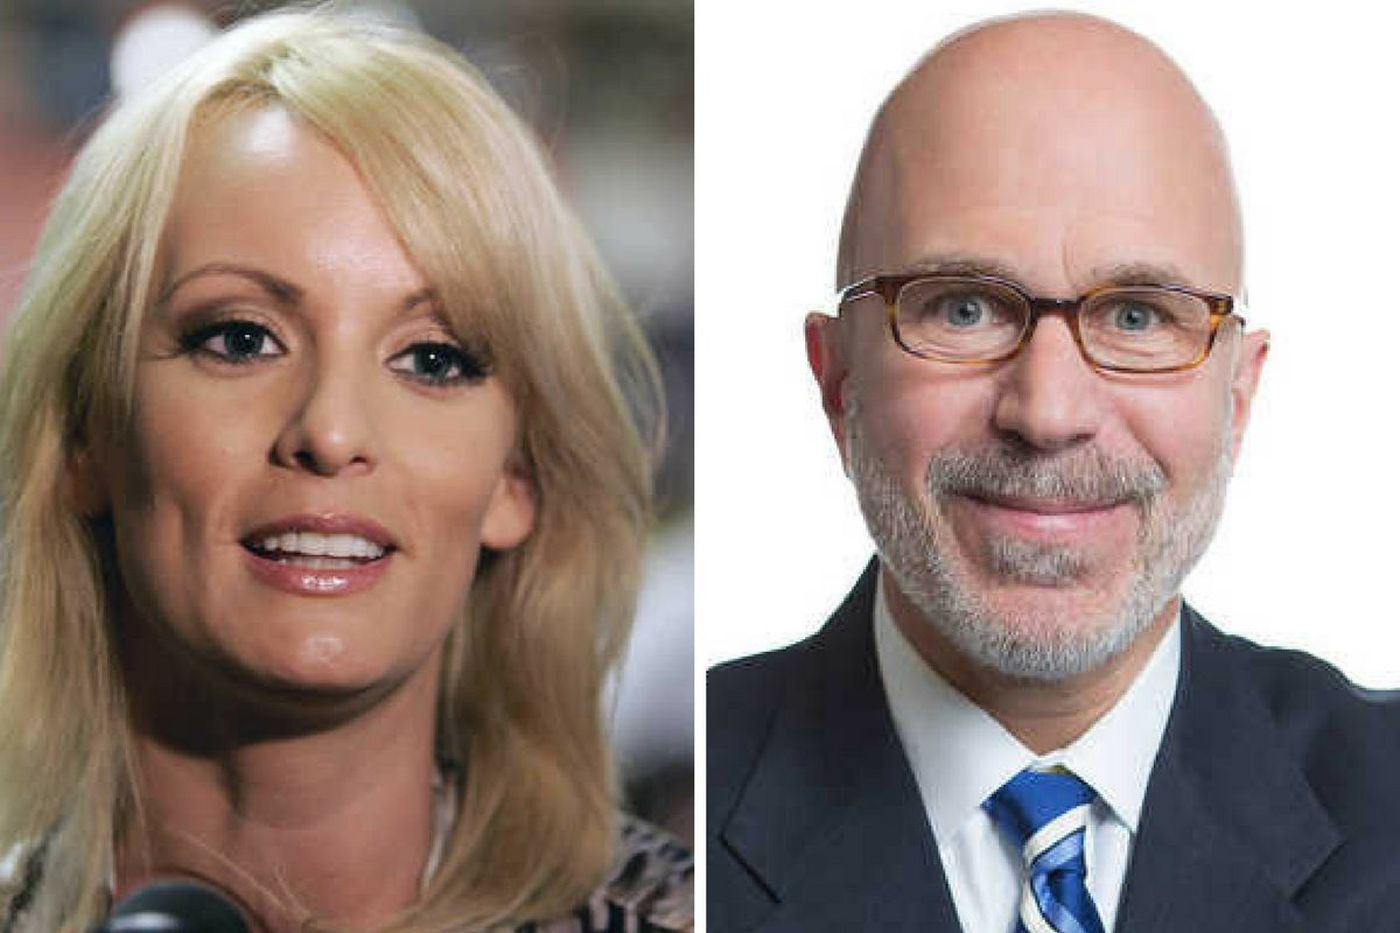 Nothing 'boilerplate' about Stormy Daniels' legal documents | Michael Smerconish